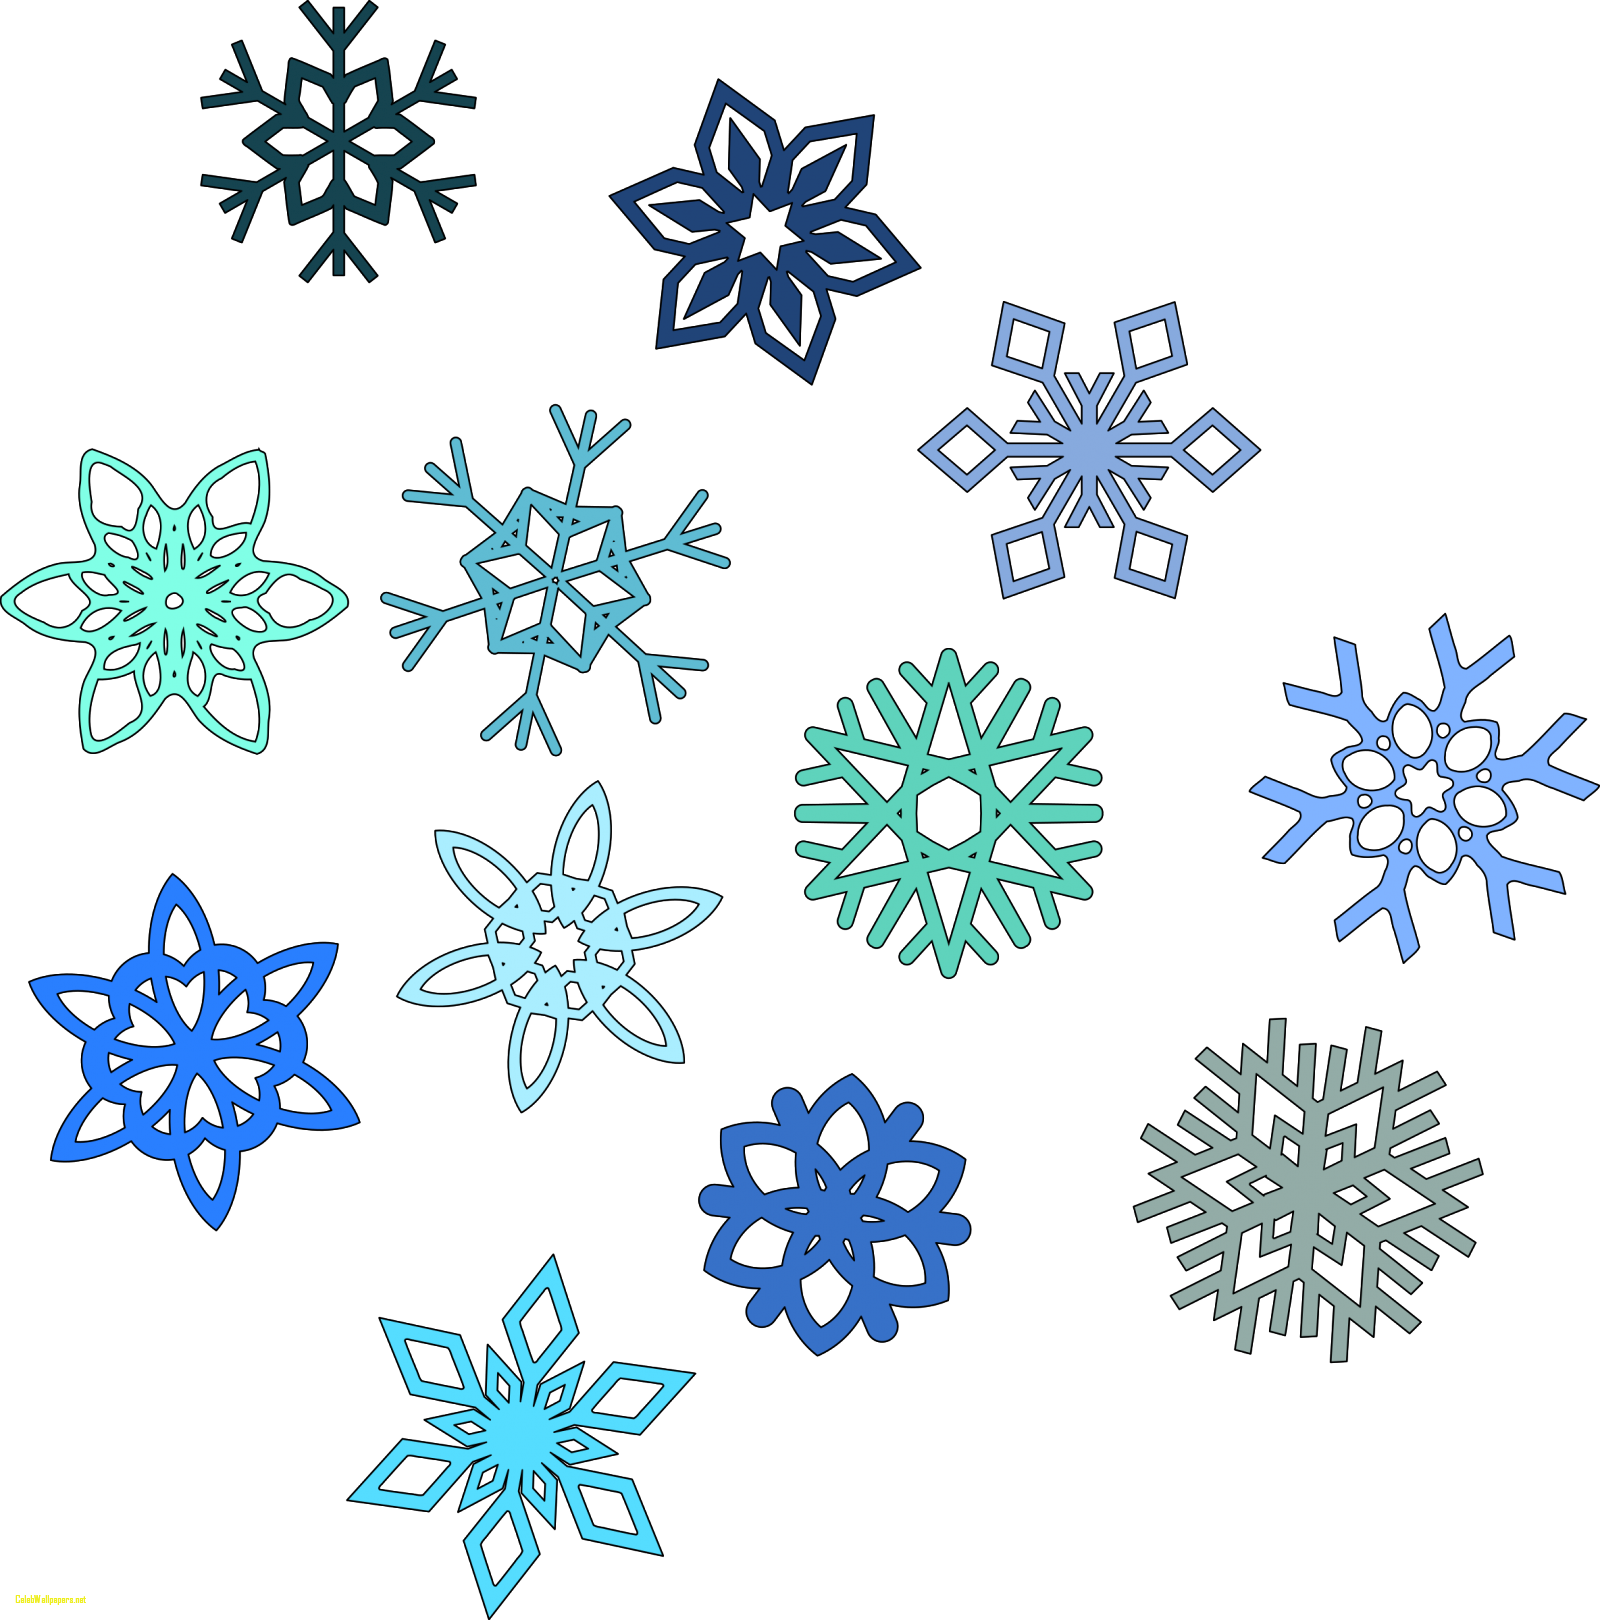 Snowflake clipart easy image royalty free download Clipart Of Snowflakes - gucciguanfangwang.me image royalty free download